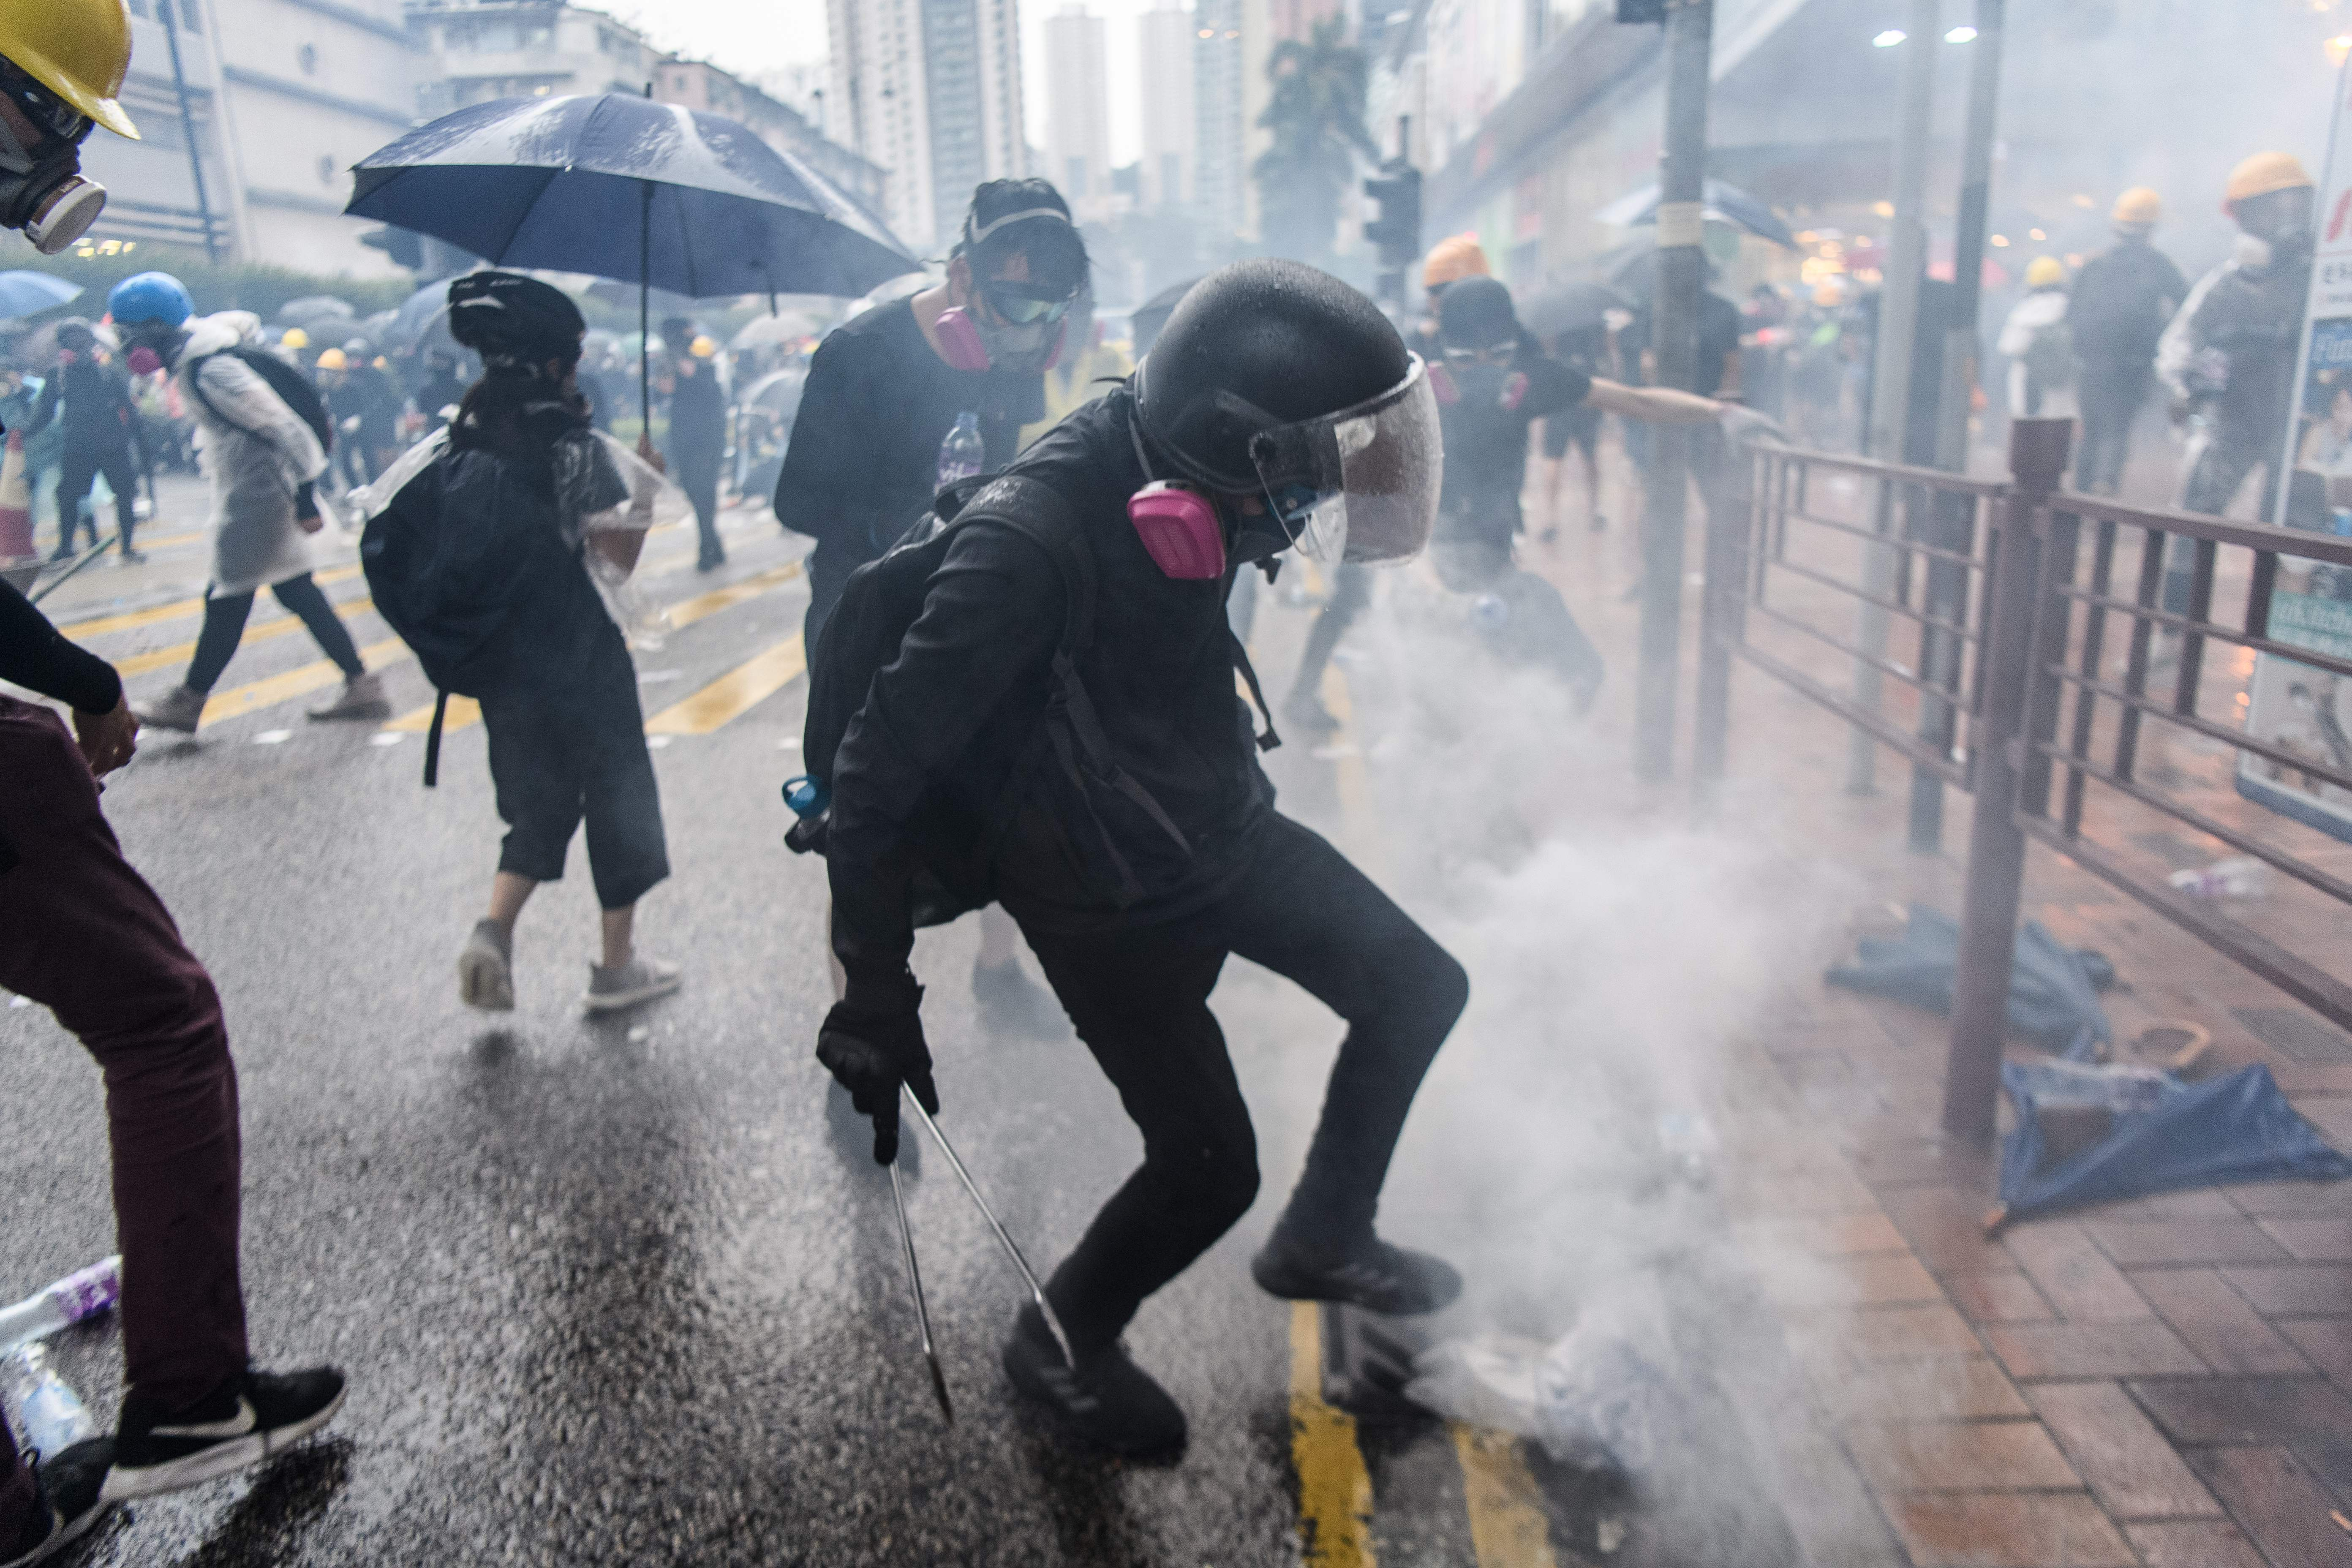 In this picture taken on August 25, 2019, a protester uses his foot to stamp a smoking tear gas round down a drain, after it was fired by police during a protest in Tsuen Wan, an area in the New Territories in Hong Kong. (Photo: Anthony Wallace/AFP via Getty Images)